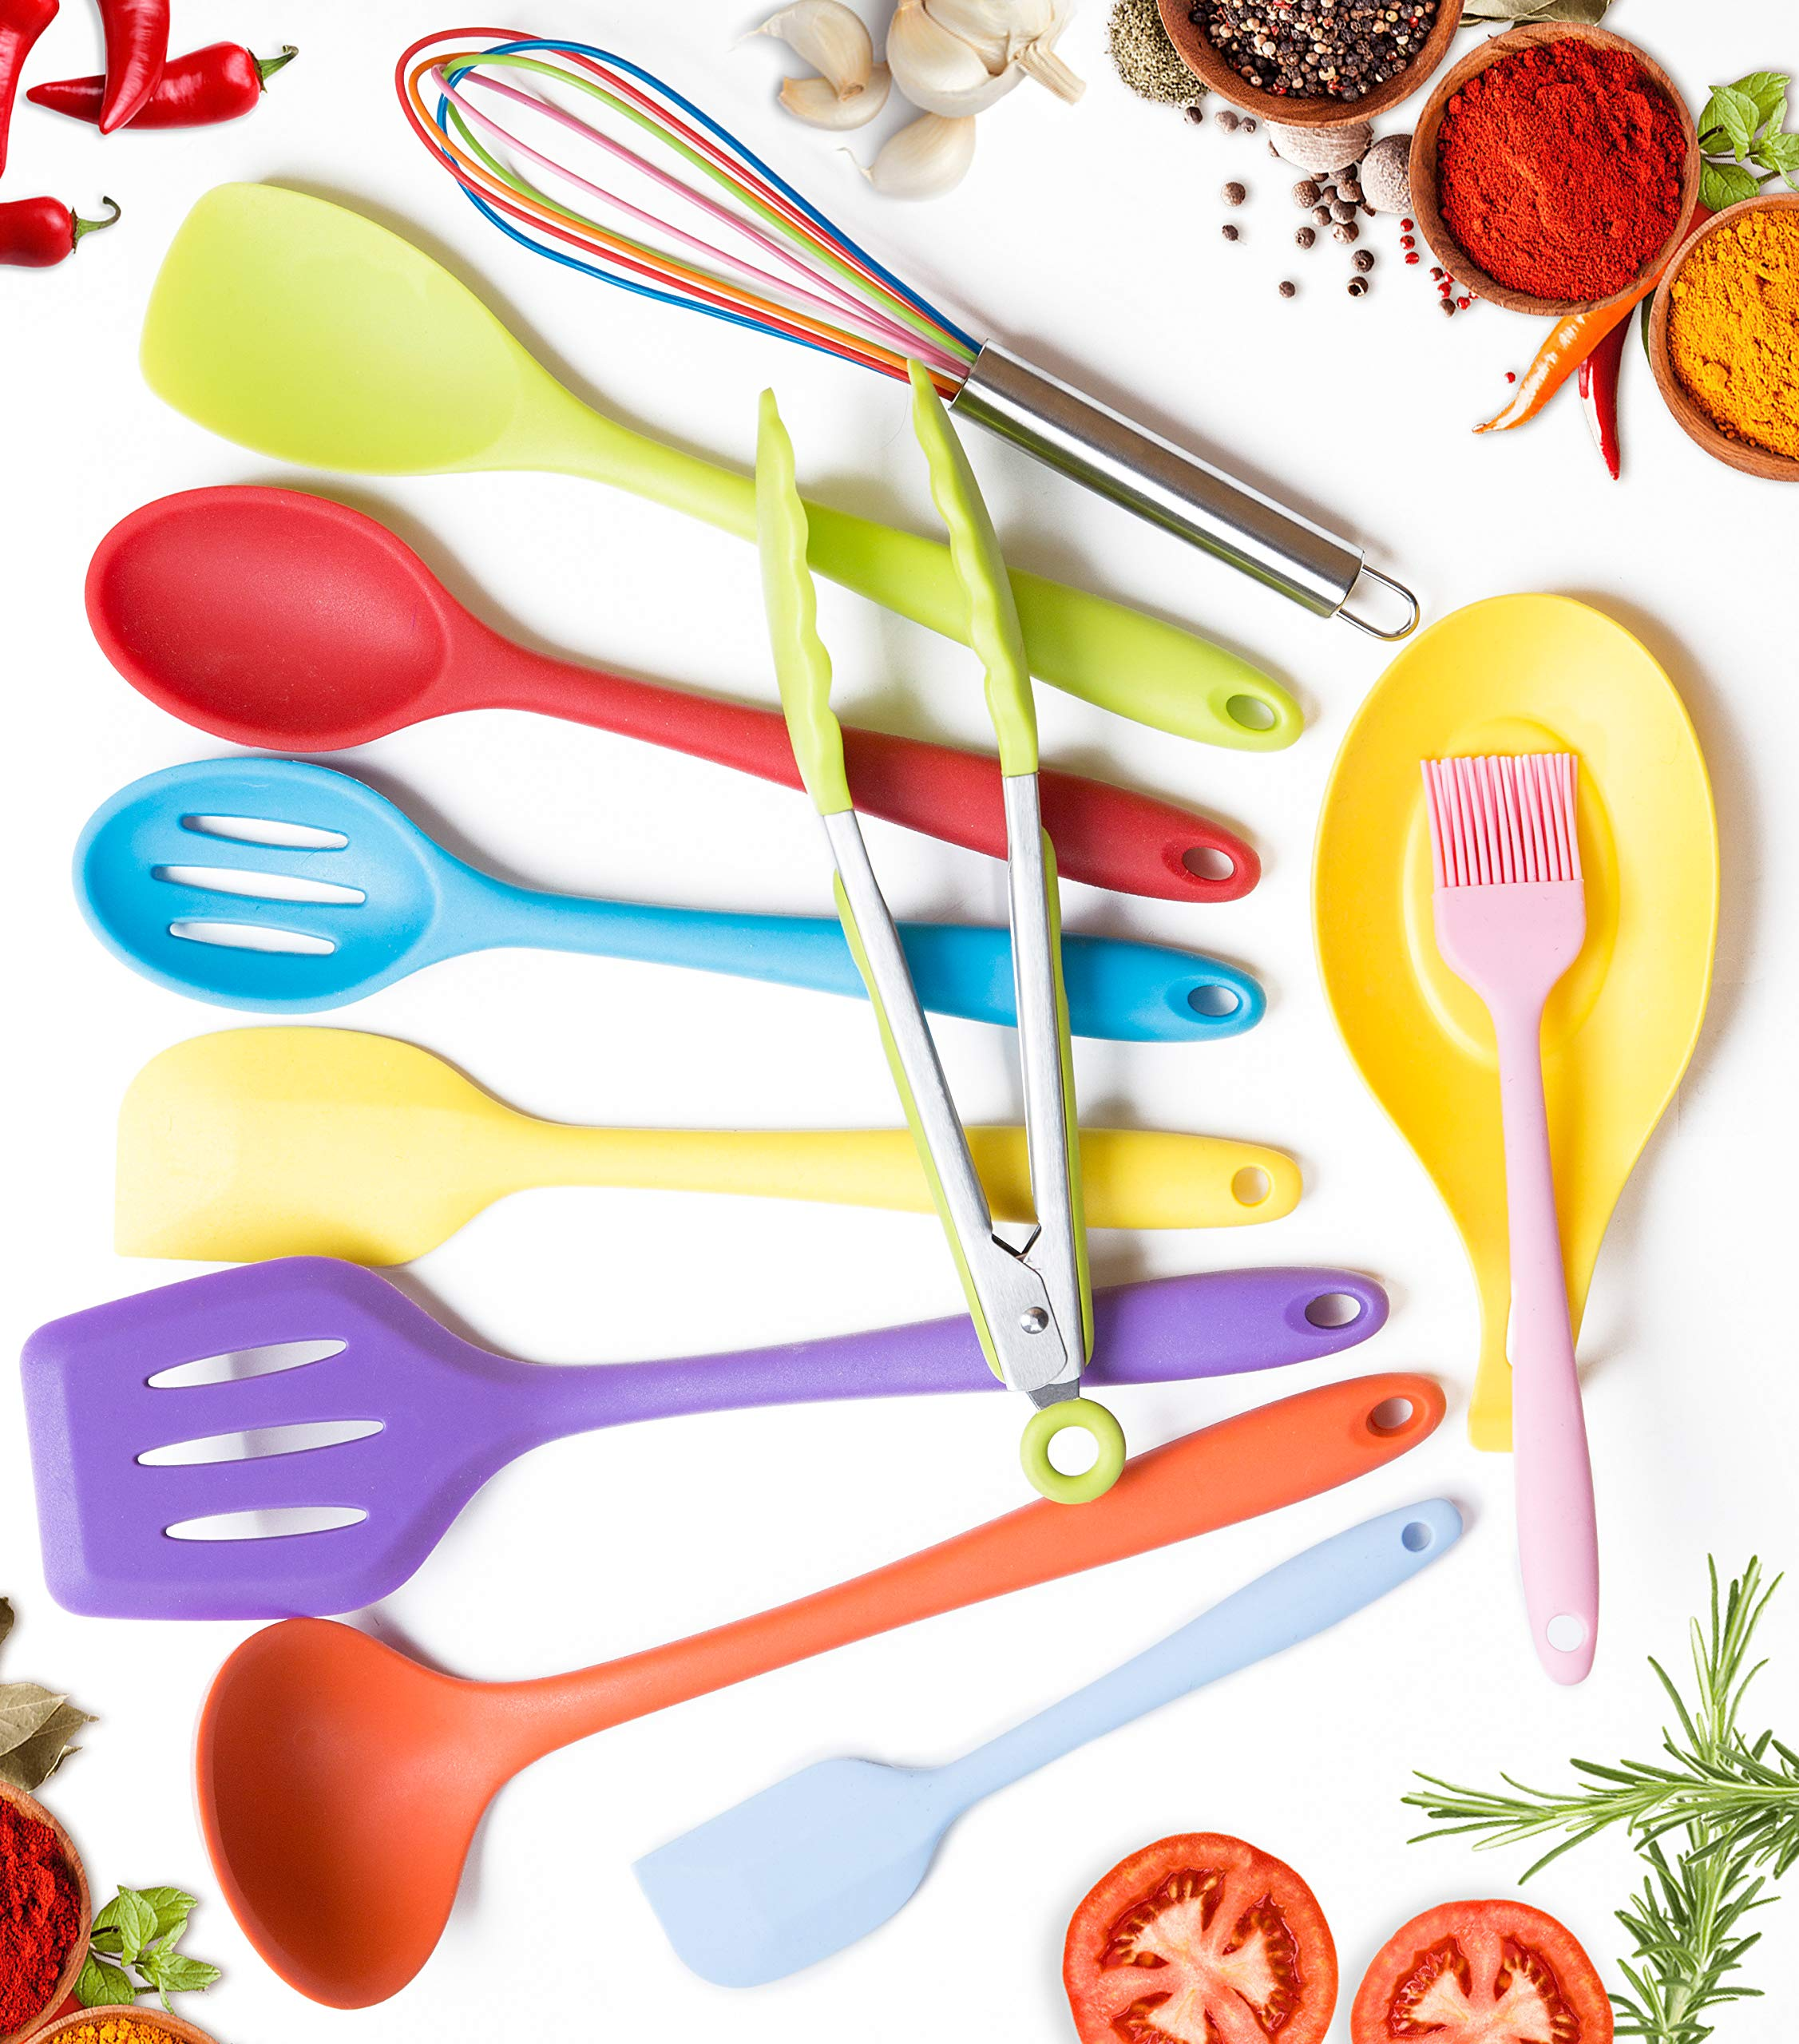 11pc Silicone Kitchen Utensil Set by CuisineFacets Colorful Cooking Utensils with Spatula, Serving Tools, Accessories and FREE Spoon Rest - Heat Resistant Spatulas and Spoons for Non-Stick Cookware 9 ✅11PC incl. FREE SPOON REST: Imagine how many colorful food creations you can now unleash all at once, because your utensil set includes everything! Silicone Wisk, Pastry Brush, 2x Spatulas, Slotted Spoon, Salad Spoon, Food Tong, All-Purpose Spoon, large Ladle, Slotted Turner, and BONUS Spoon Rest. ✅HEAT RESISTANT & EASY TO CLEAN: From the Rainbow Whisk to the Pink Pastry Brush, just pop your silicone kitchen utensils in the dishwasher to clean. Everything is made from FDA Compliant Food Grade Silicone and can withstand temperatures up to 446°F... like steaming hot pasta, pumpkin soup or pancakes. ✅WHAT'S YOUR FAVE? If you're like most people, there are always 1 or 2 kitchen tools you love the most. And if you're like us, it could even be because of color. Either way, our Cheery Utensils Set from CuisineFacets gives you the best of both - your favorite non-stick kitchen utensils, in your favorite colors too.